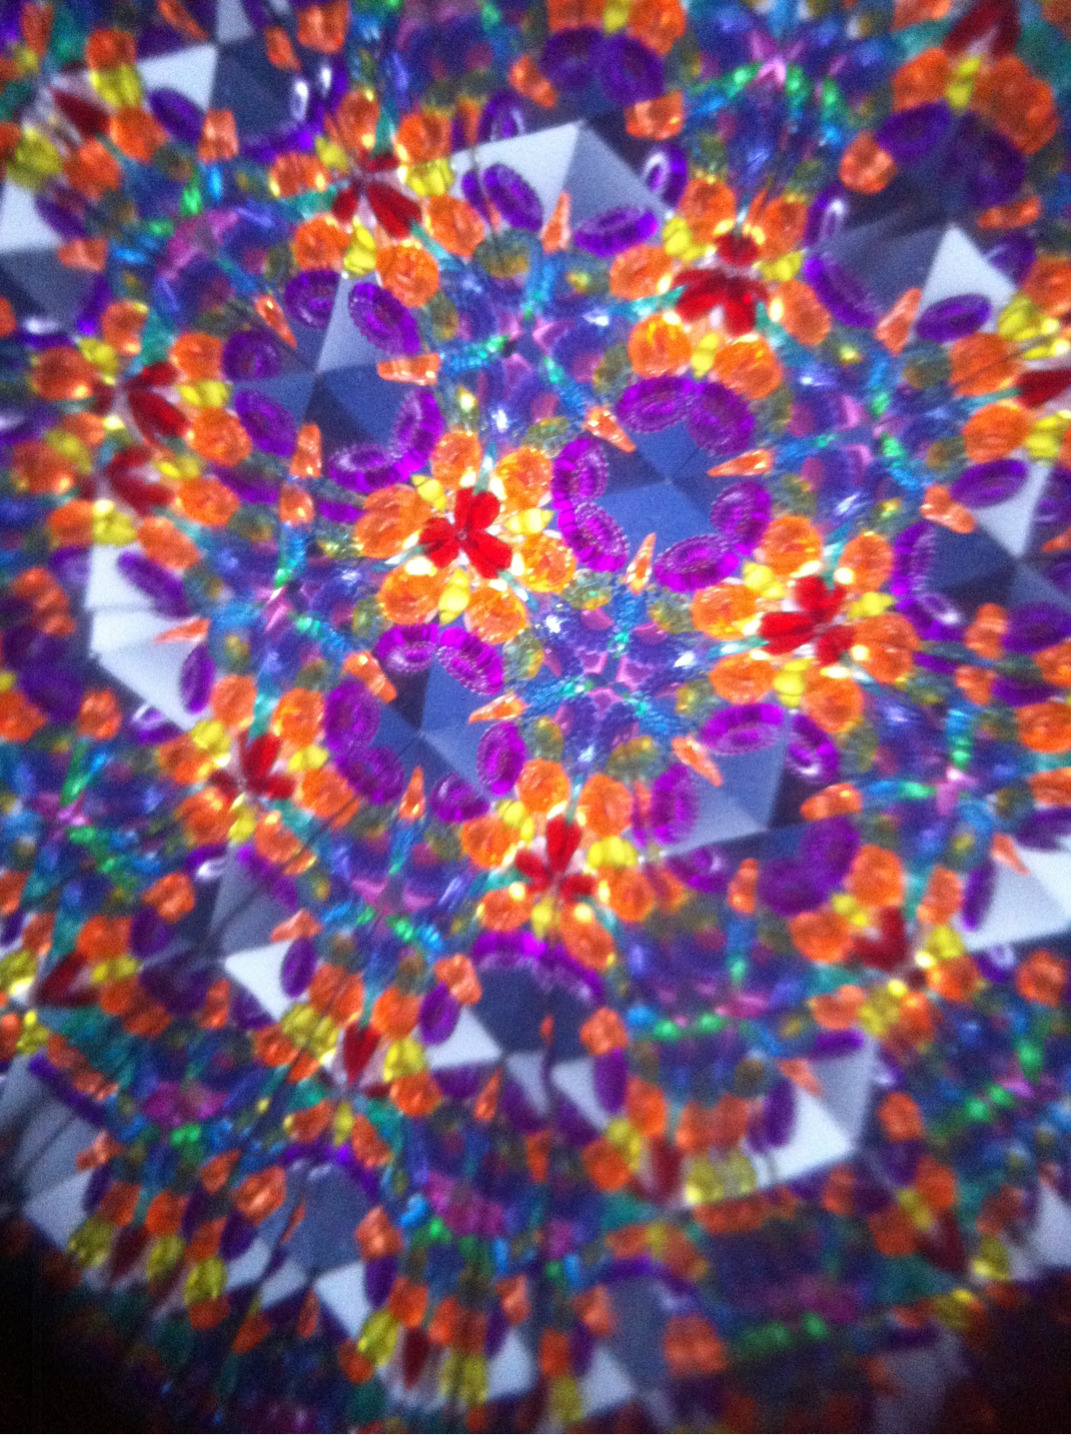 Today my boyfriend bought me a kaleidoscope